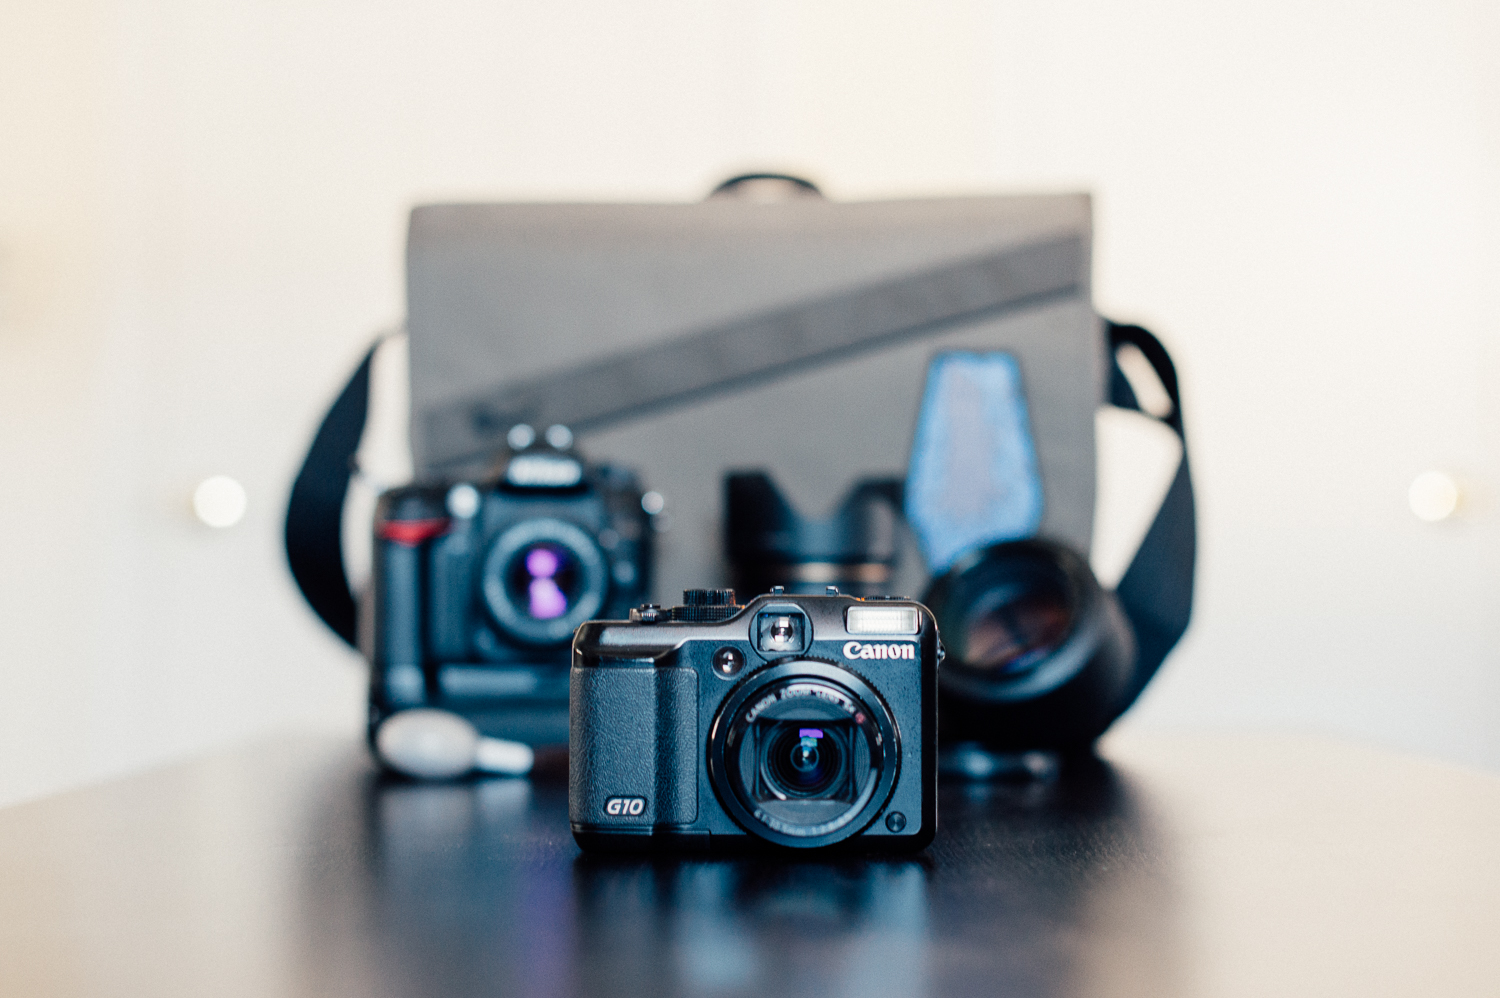 The Best Compact Digital Cameras for EDC